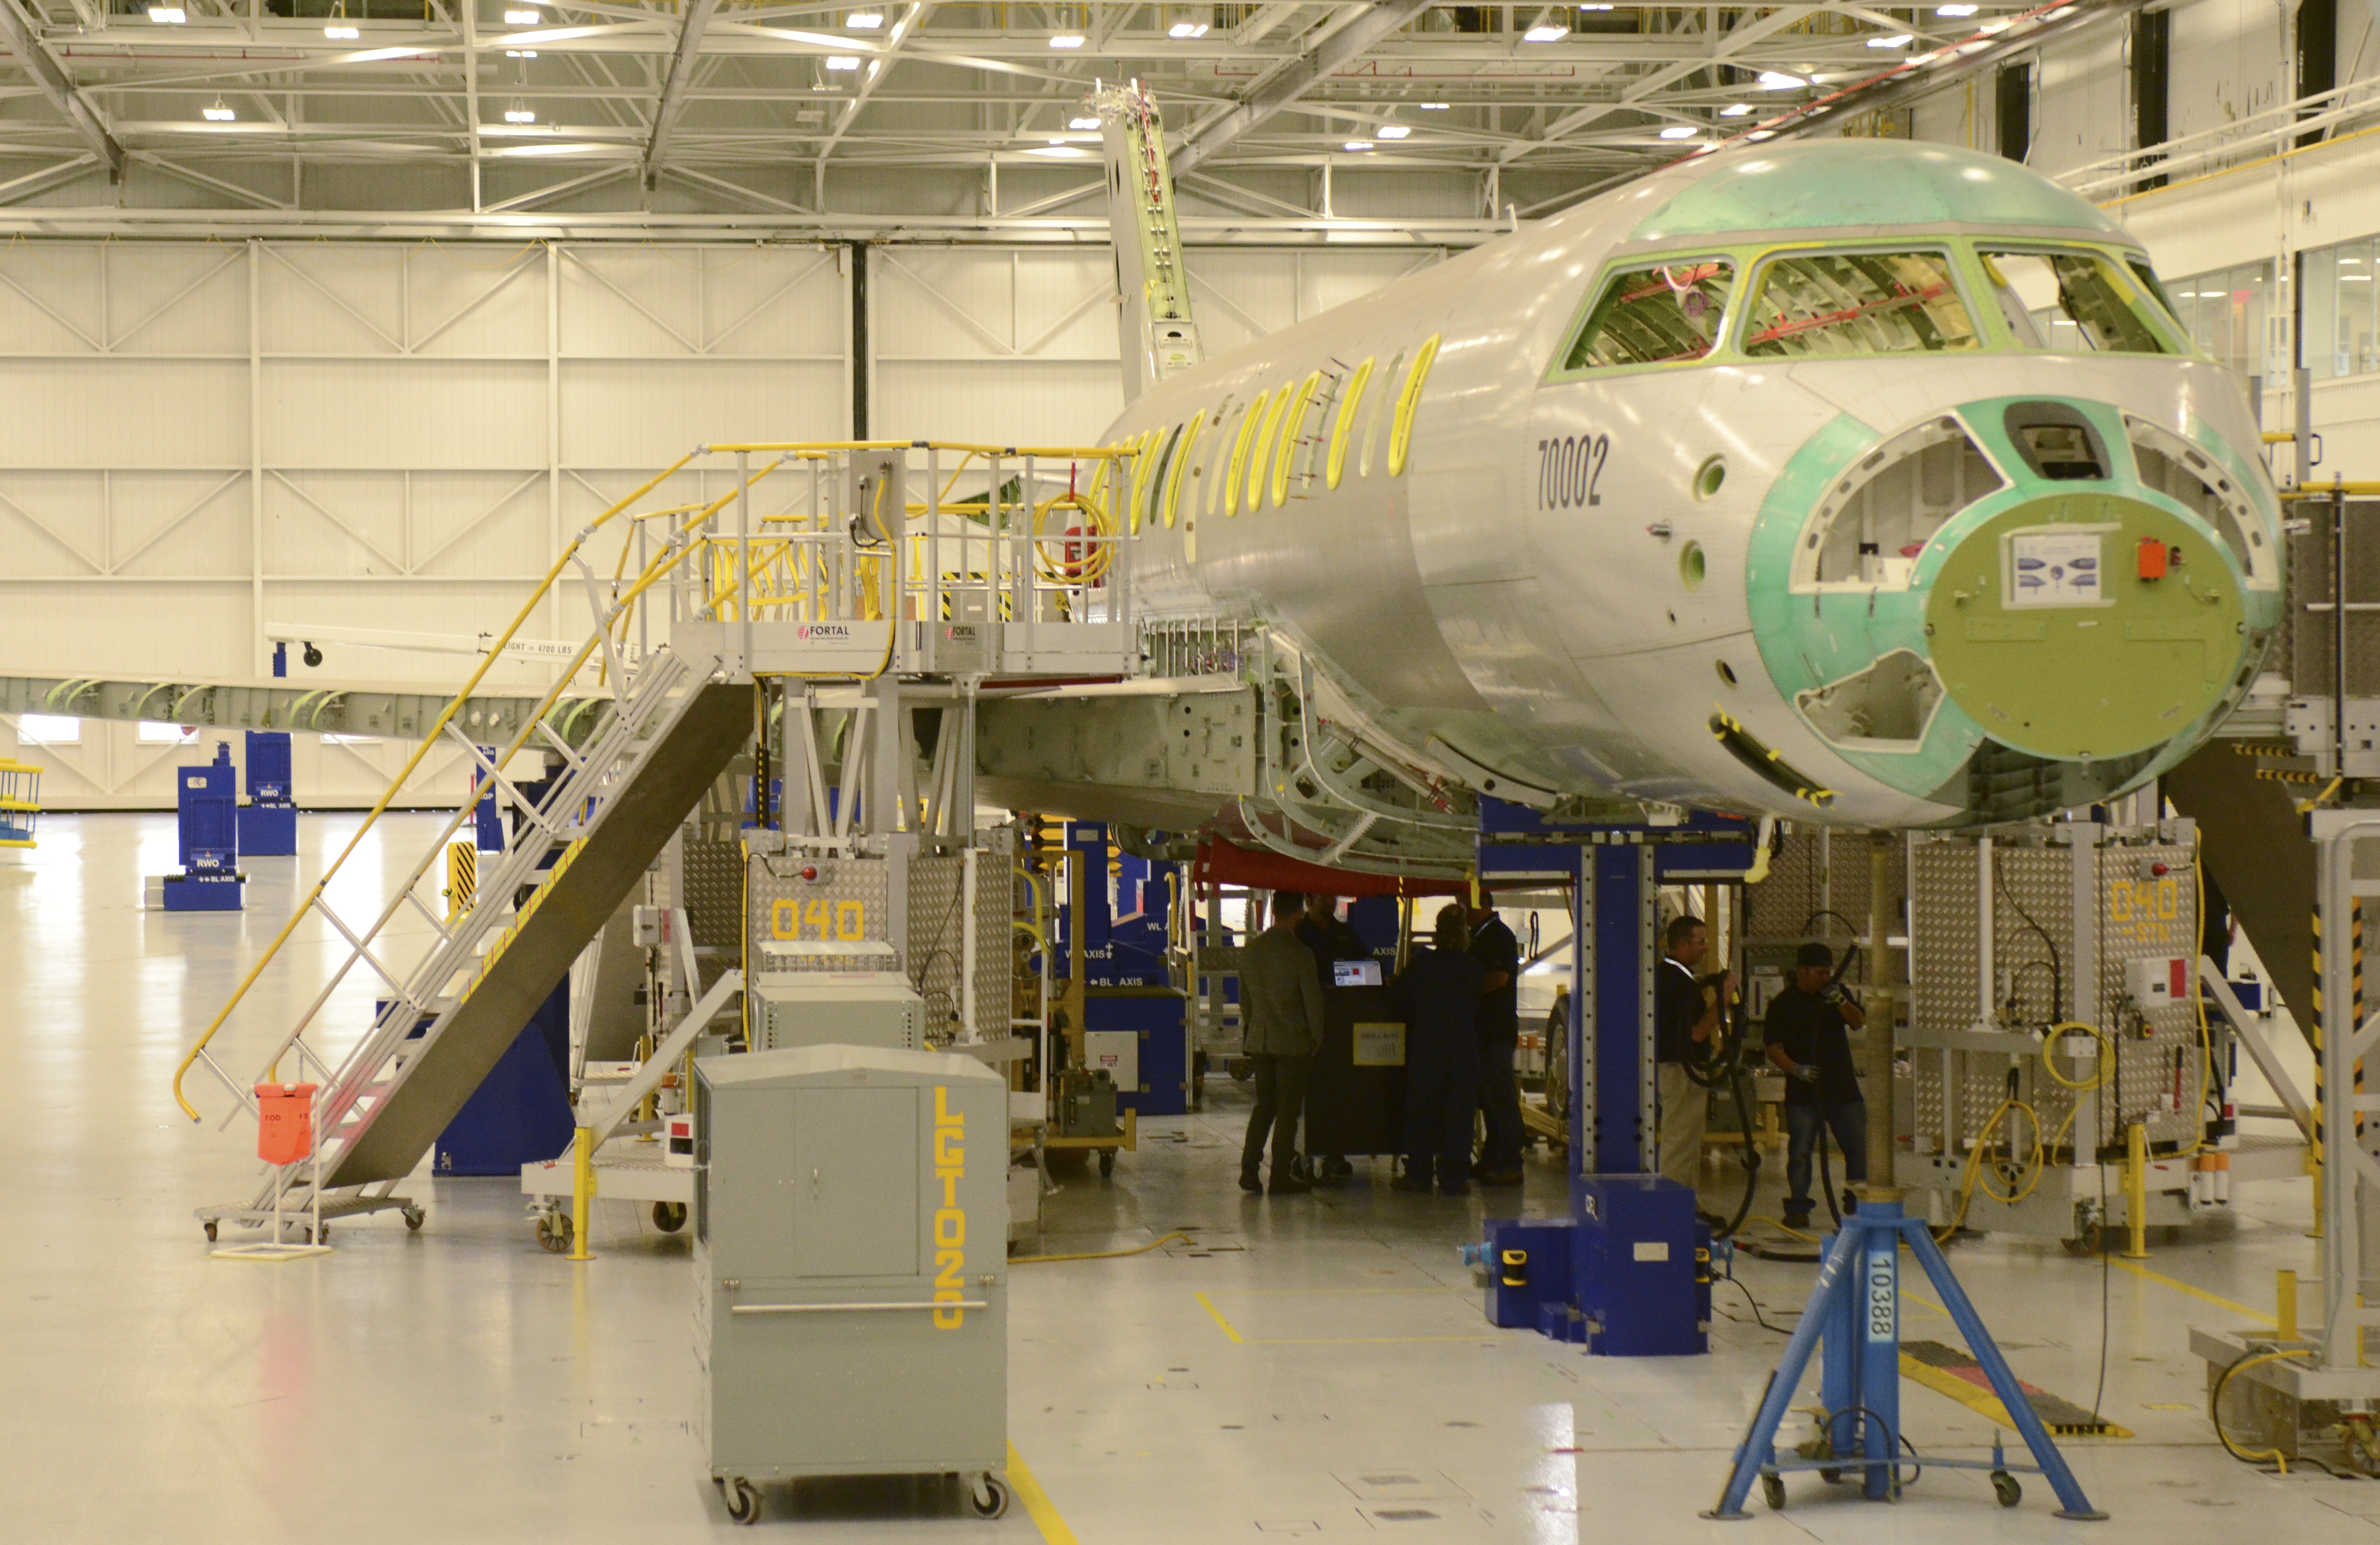 Bombardier Inc's Global 7000 business jet flight test vehicle is shown on the floor of the company's assembly line in Toronto, Ontario November 3, 2015. REUTERS/Euan Rocha